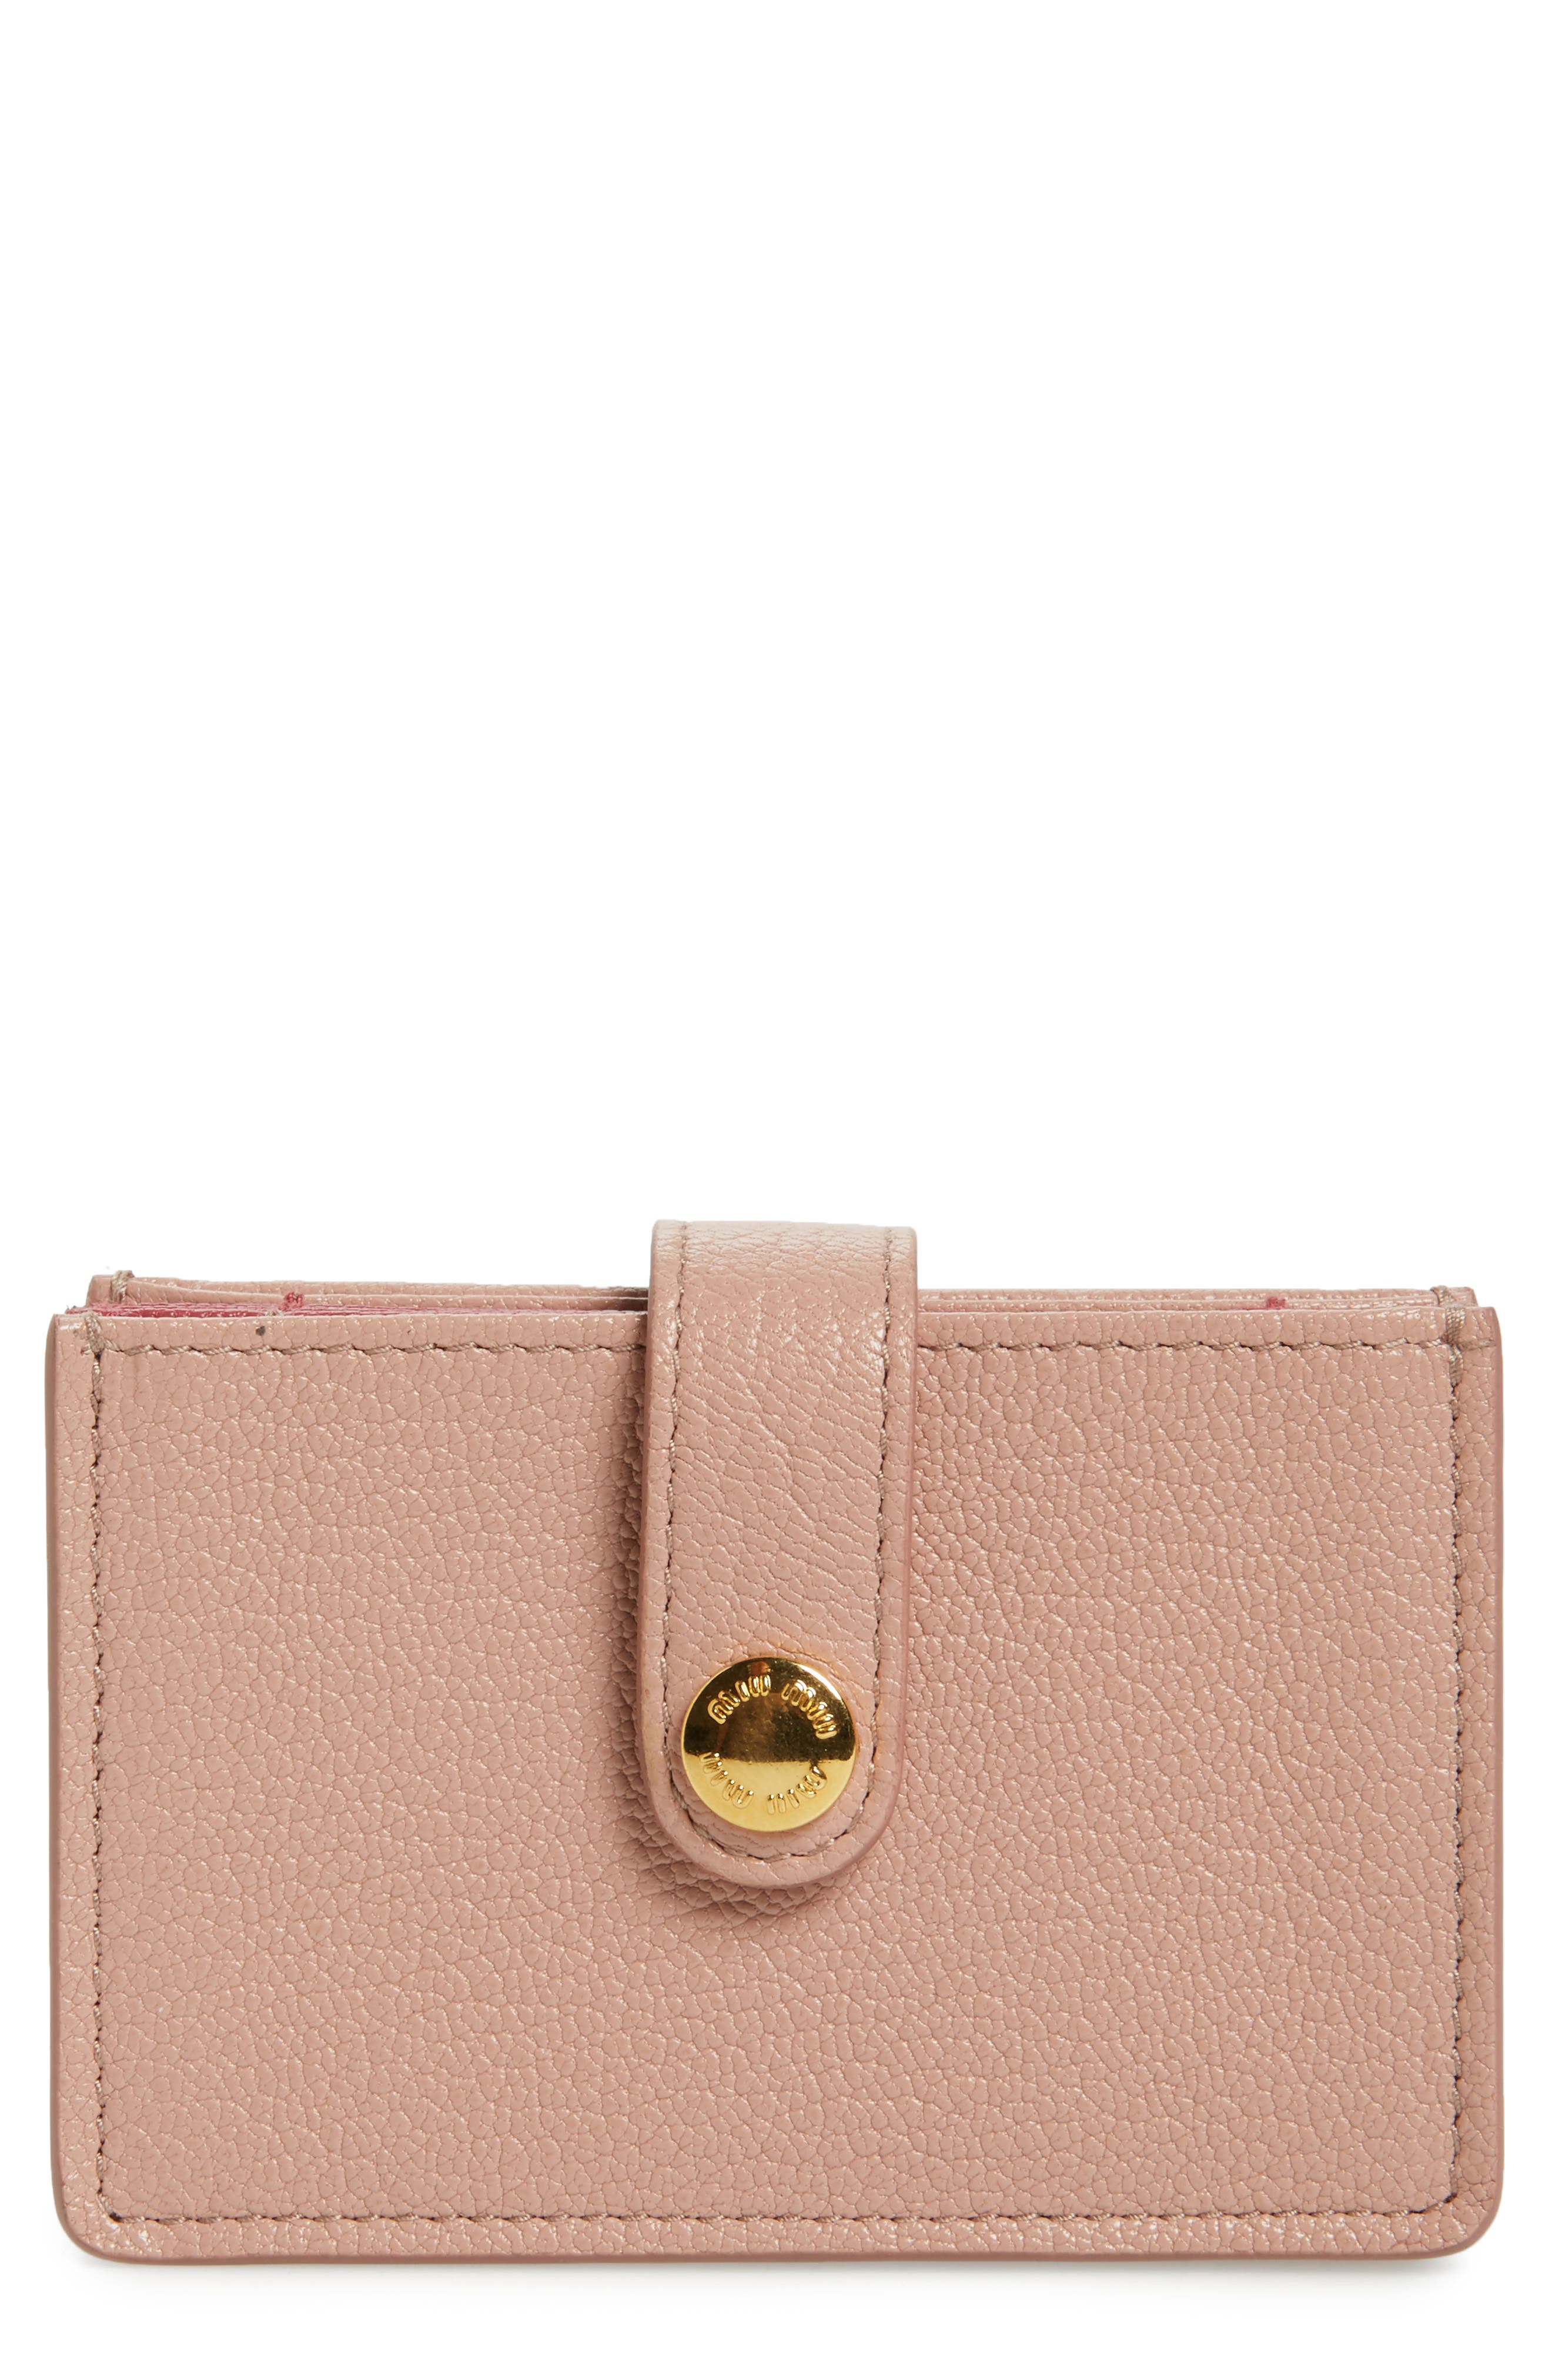 Miu Miu Madras Accordion Leather Card Case